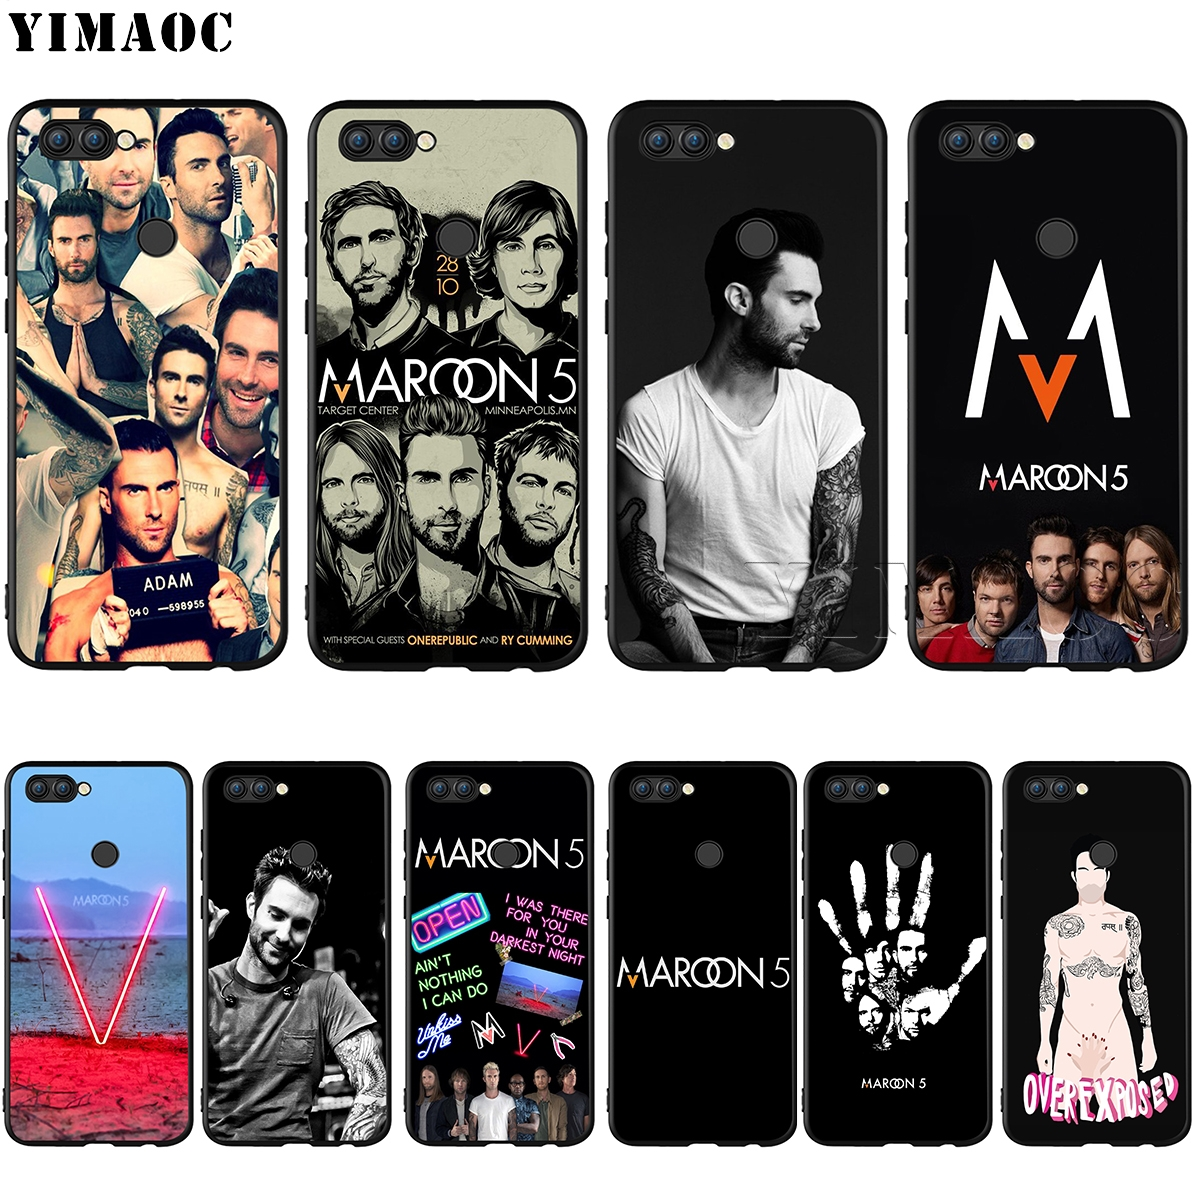 YIMAOC Maroon 5 Adam Levine Silicone Case for Huawei Honor Mate Y6 6A 8 9 10 P8 P9 P10 P20 P Smart Lite Pro 2017